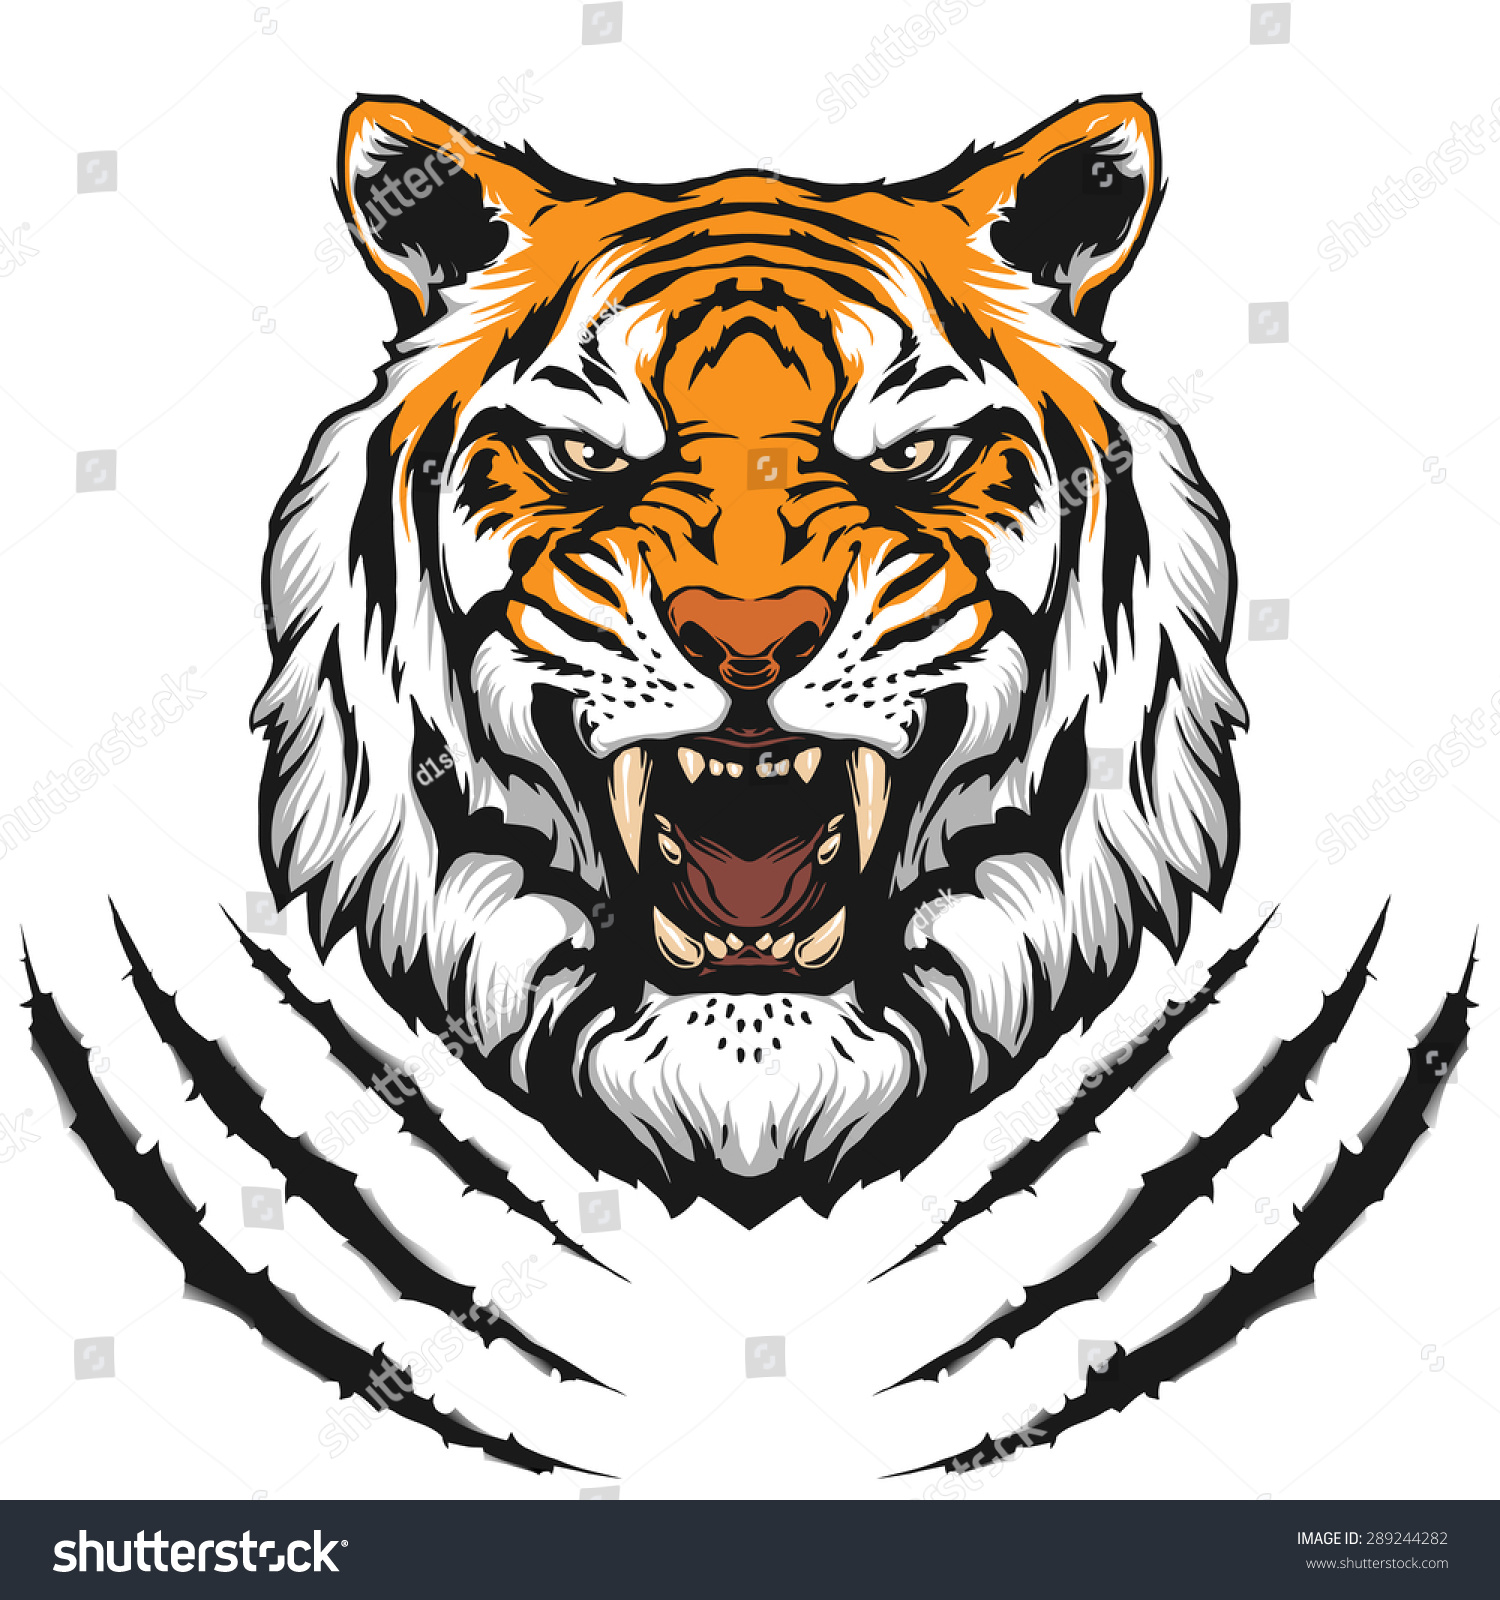 Tiger roar vector - photo#2